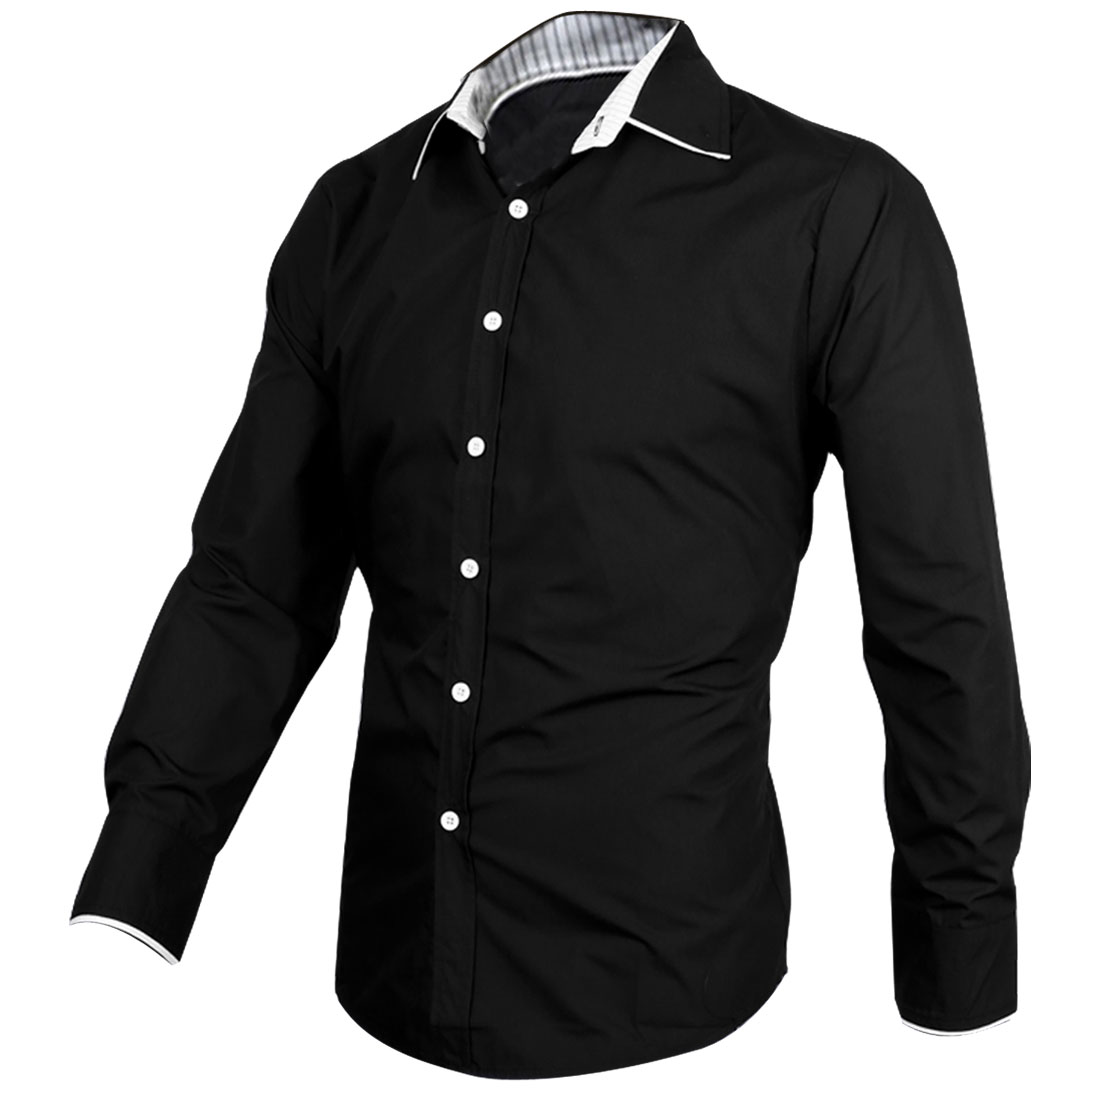 Mens Black Point Collar Button Cuff Casual Stylish Shirt M